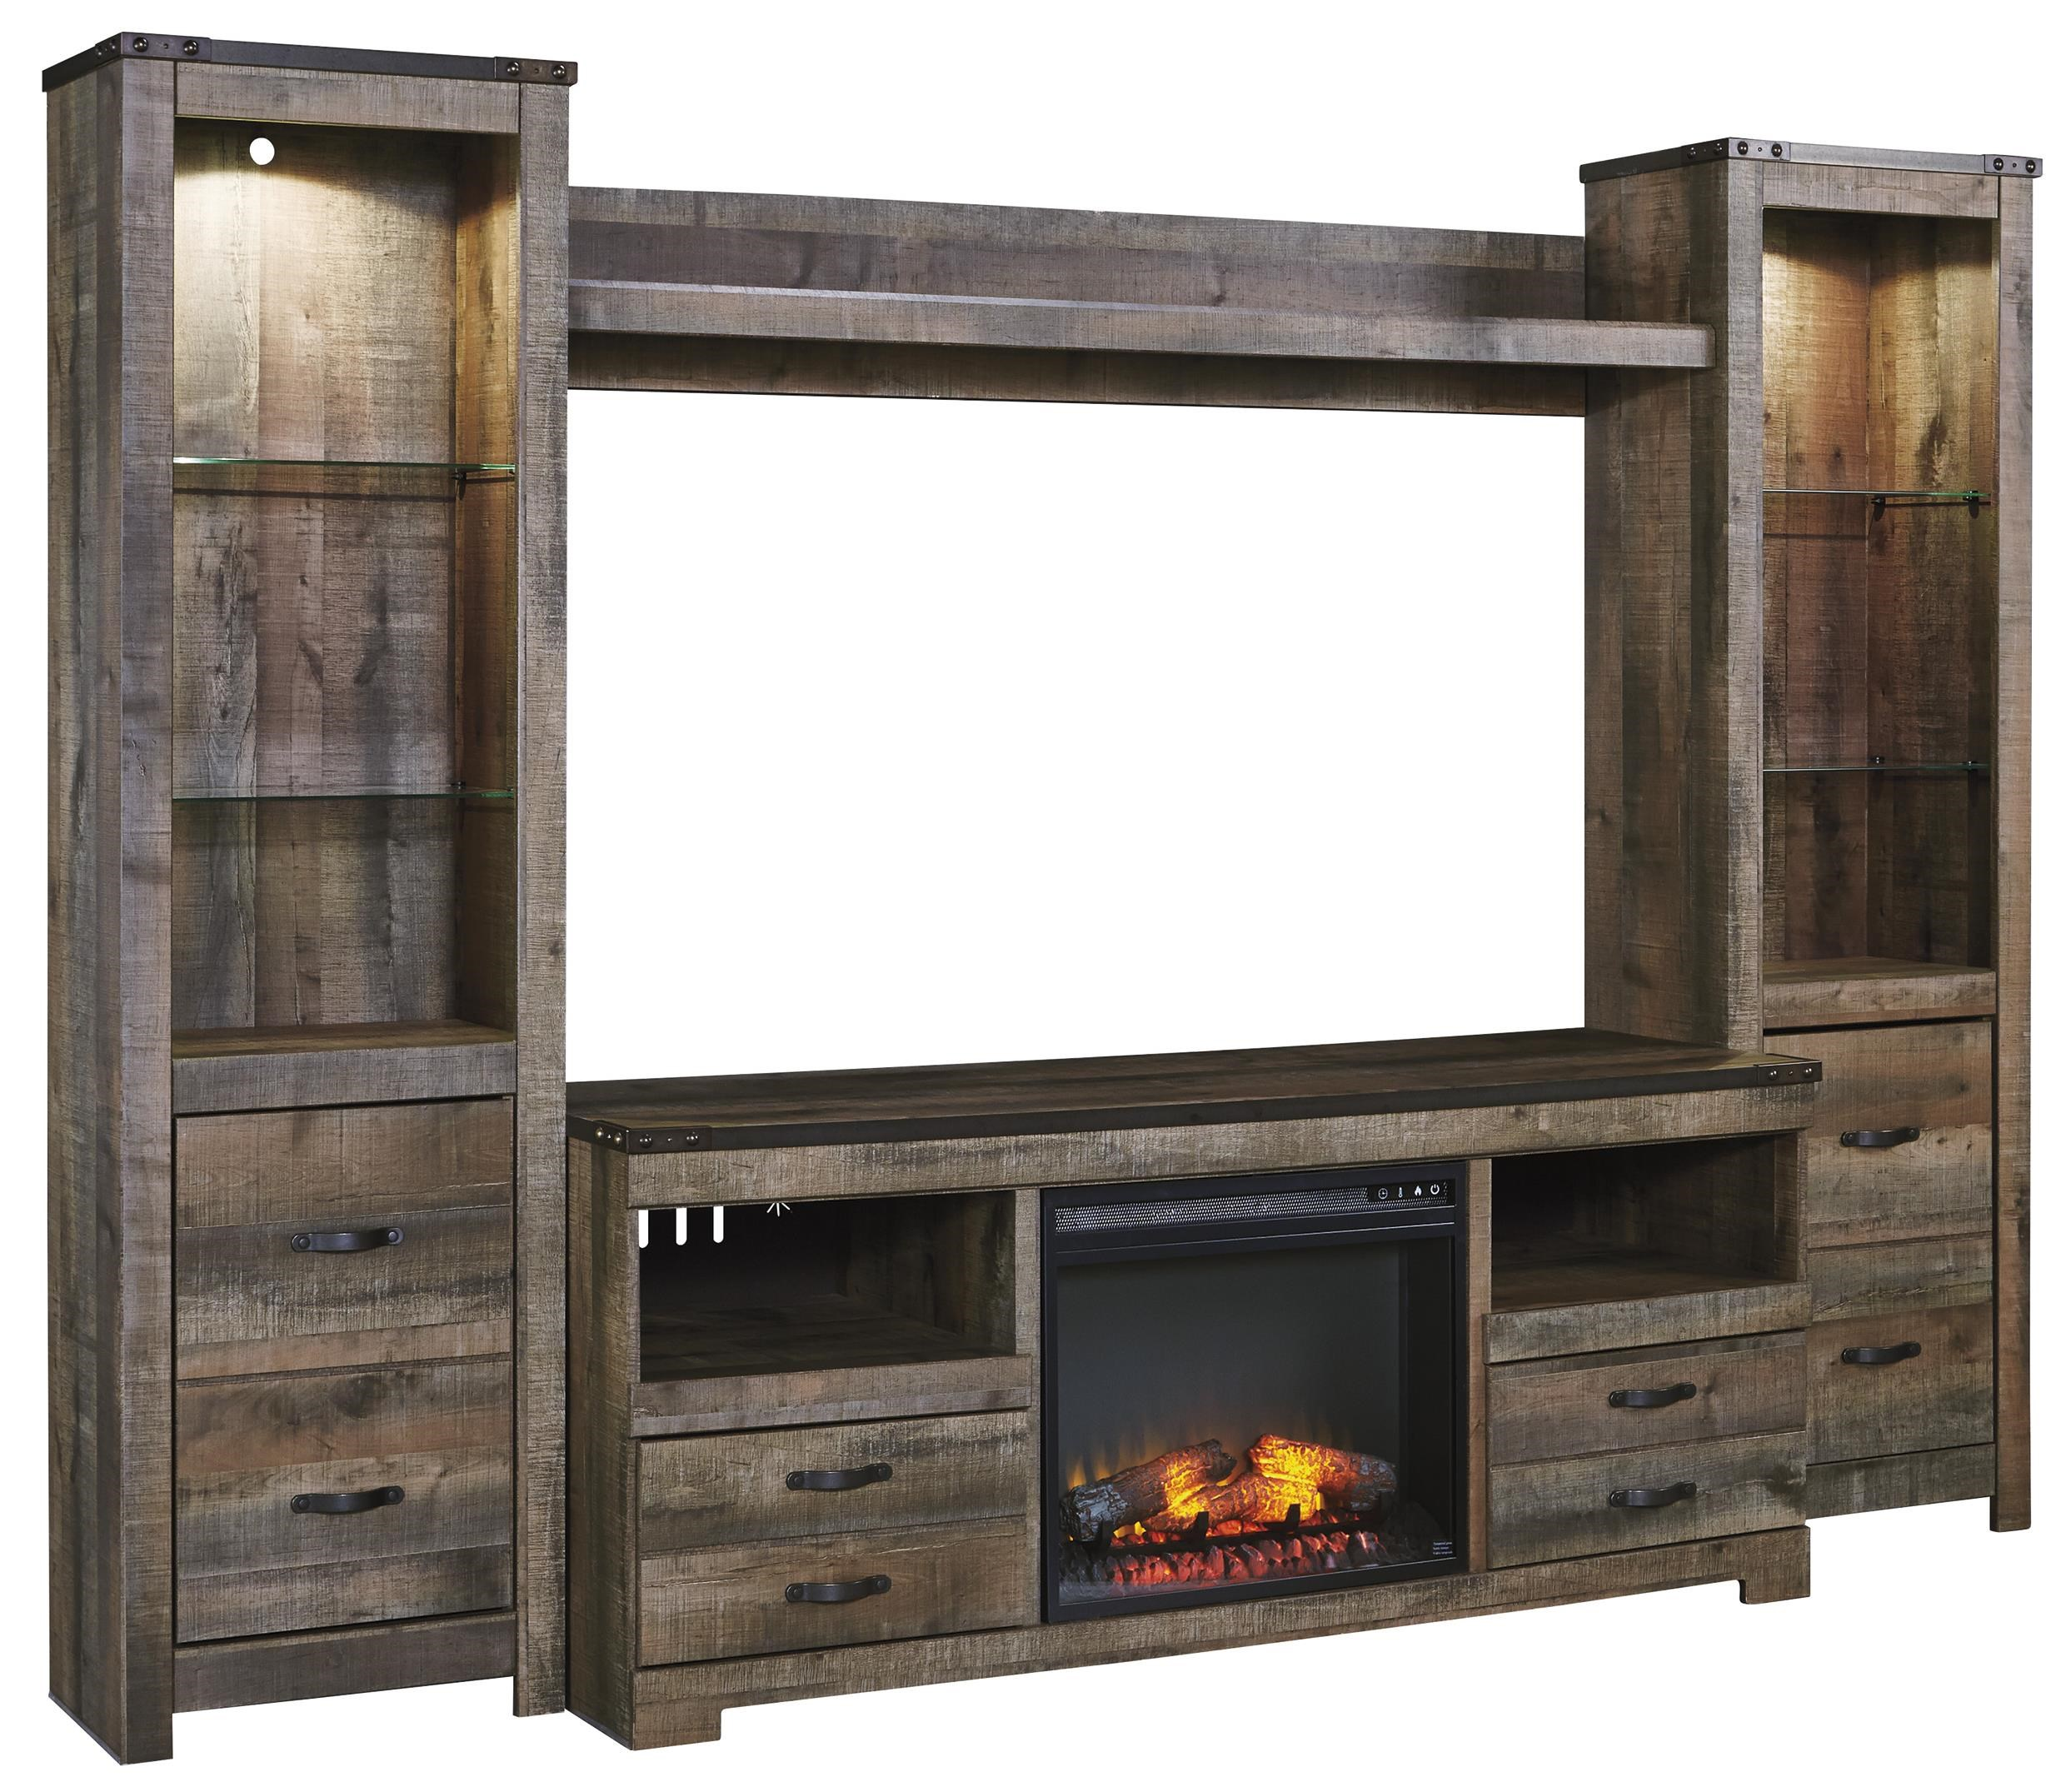 Signature Design By Ashley Trinell Rustic Large TV Stand W/ Fireplace  Insert, 2 Tall Piers, U0026 Bridge   John V Schultz Furniture   Wall Unit